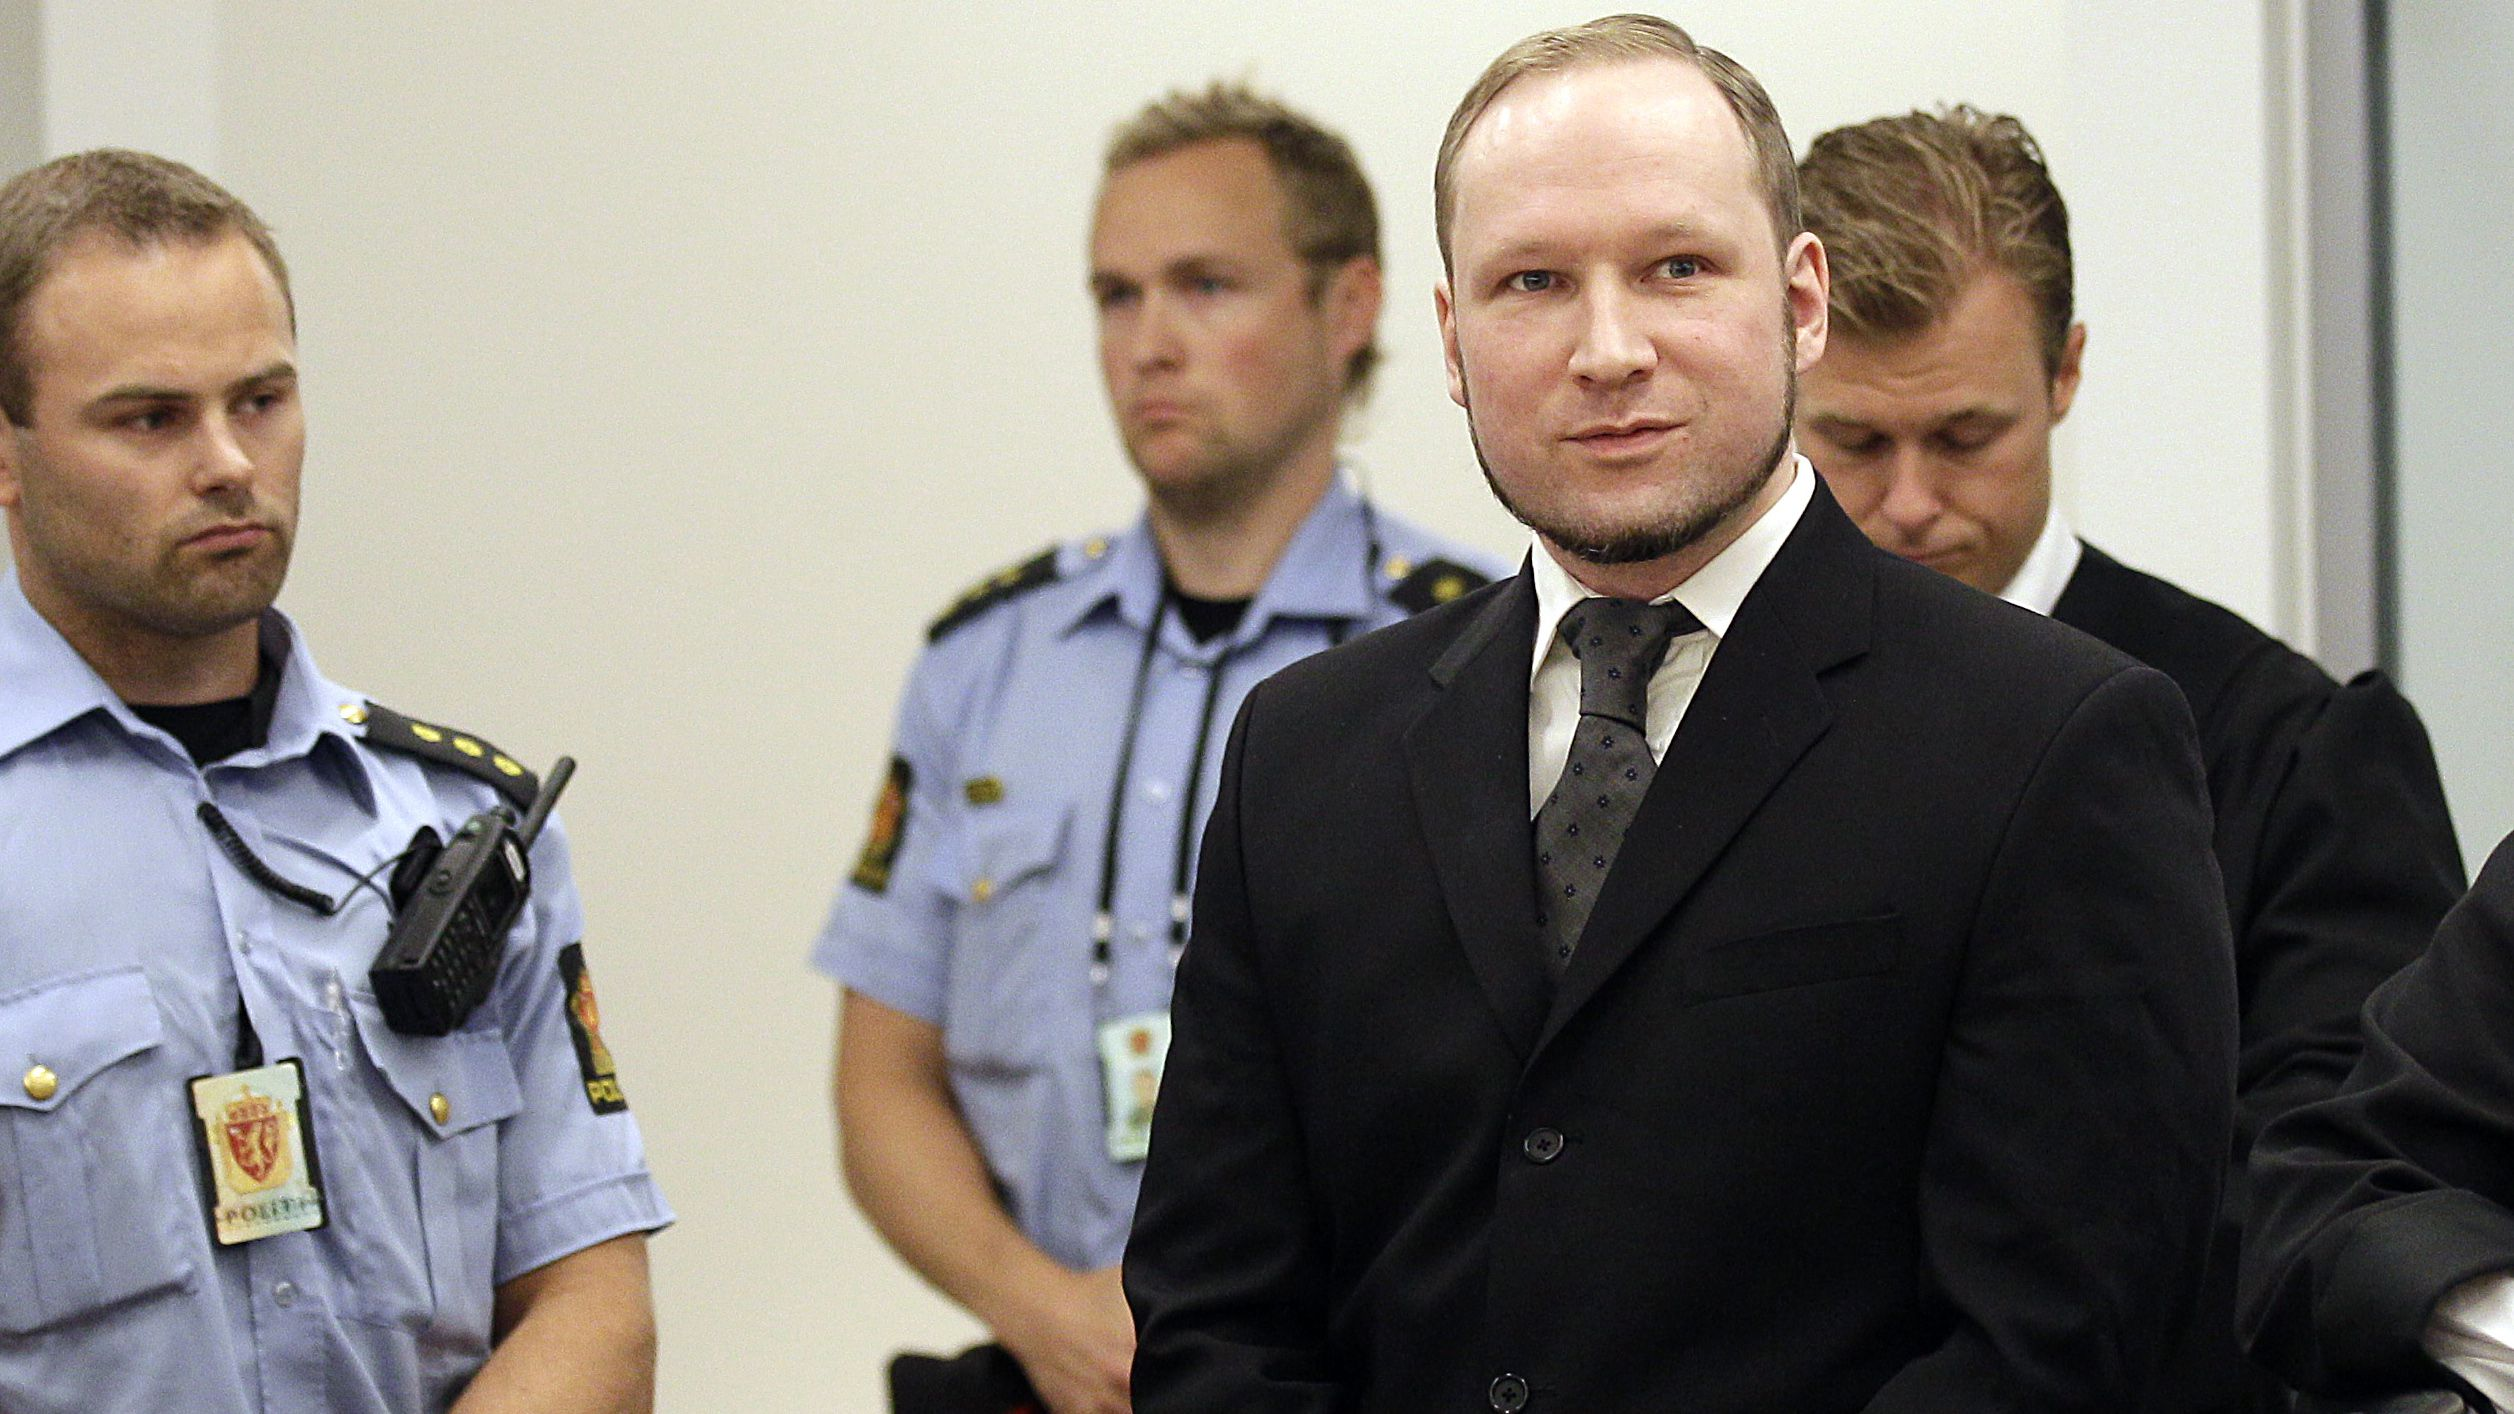 Mass murderer Anders Behring Breivik,  arrives at the courtroom in a courthouse in Oslo  Friday Aug. 24, 2012 .  Breivik was convicted Friday of terrorism and premeditated murder for bomb and gun attacks that killed 77 people and sentenced to a special prison term that would allow authorities to keep him locked up for as long as he is considered dangerous. (AP Photo/Frank Augstein)